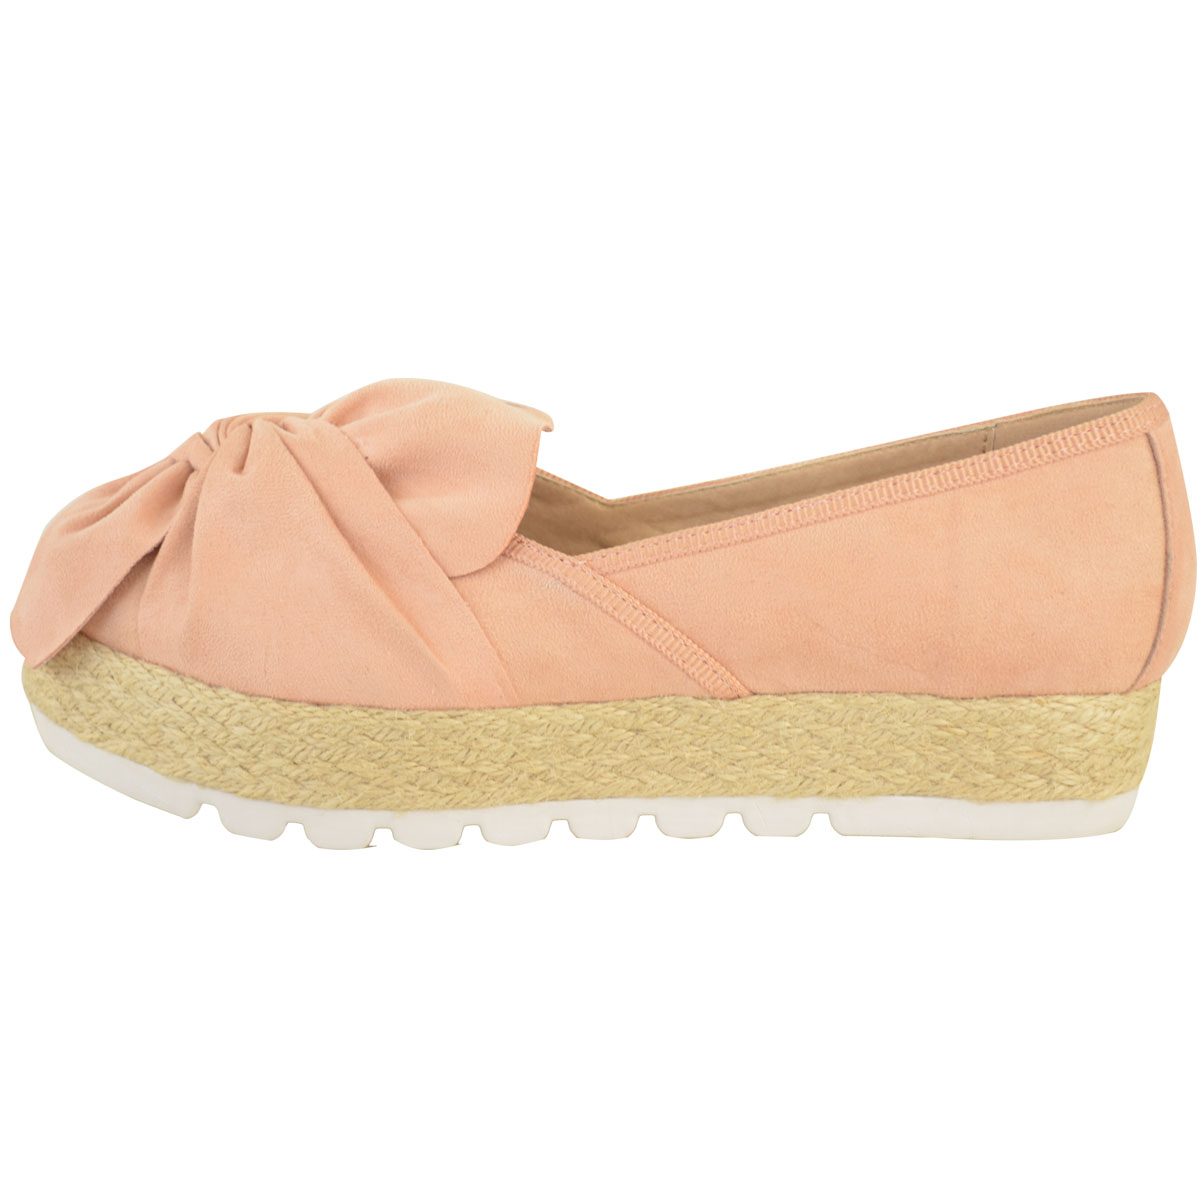 Womens-Ladies-Espadrilles-Flat-Pom-Pom-Sandals-Slip-On-Strappy-Comfy-Size-Shoes thumbnail 44